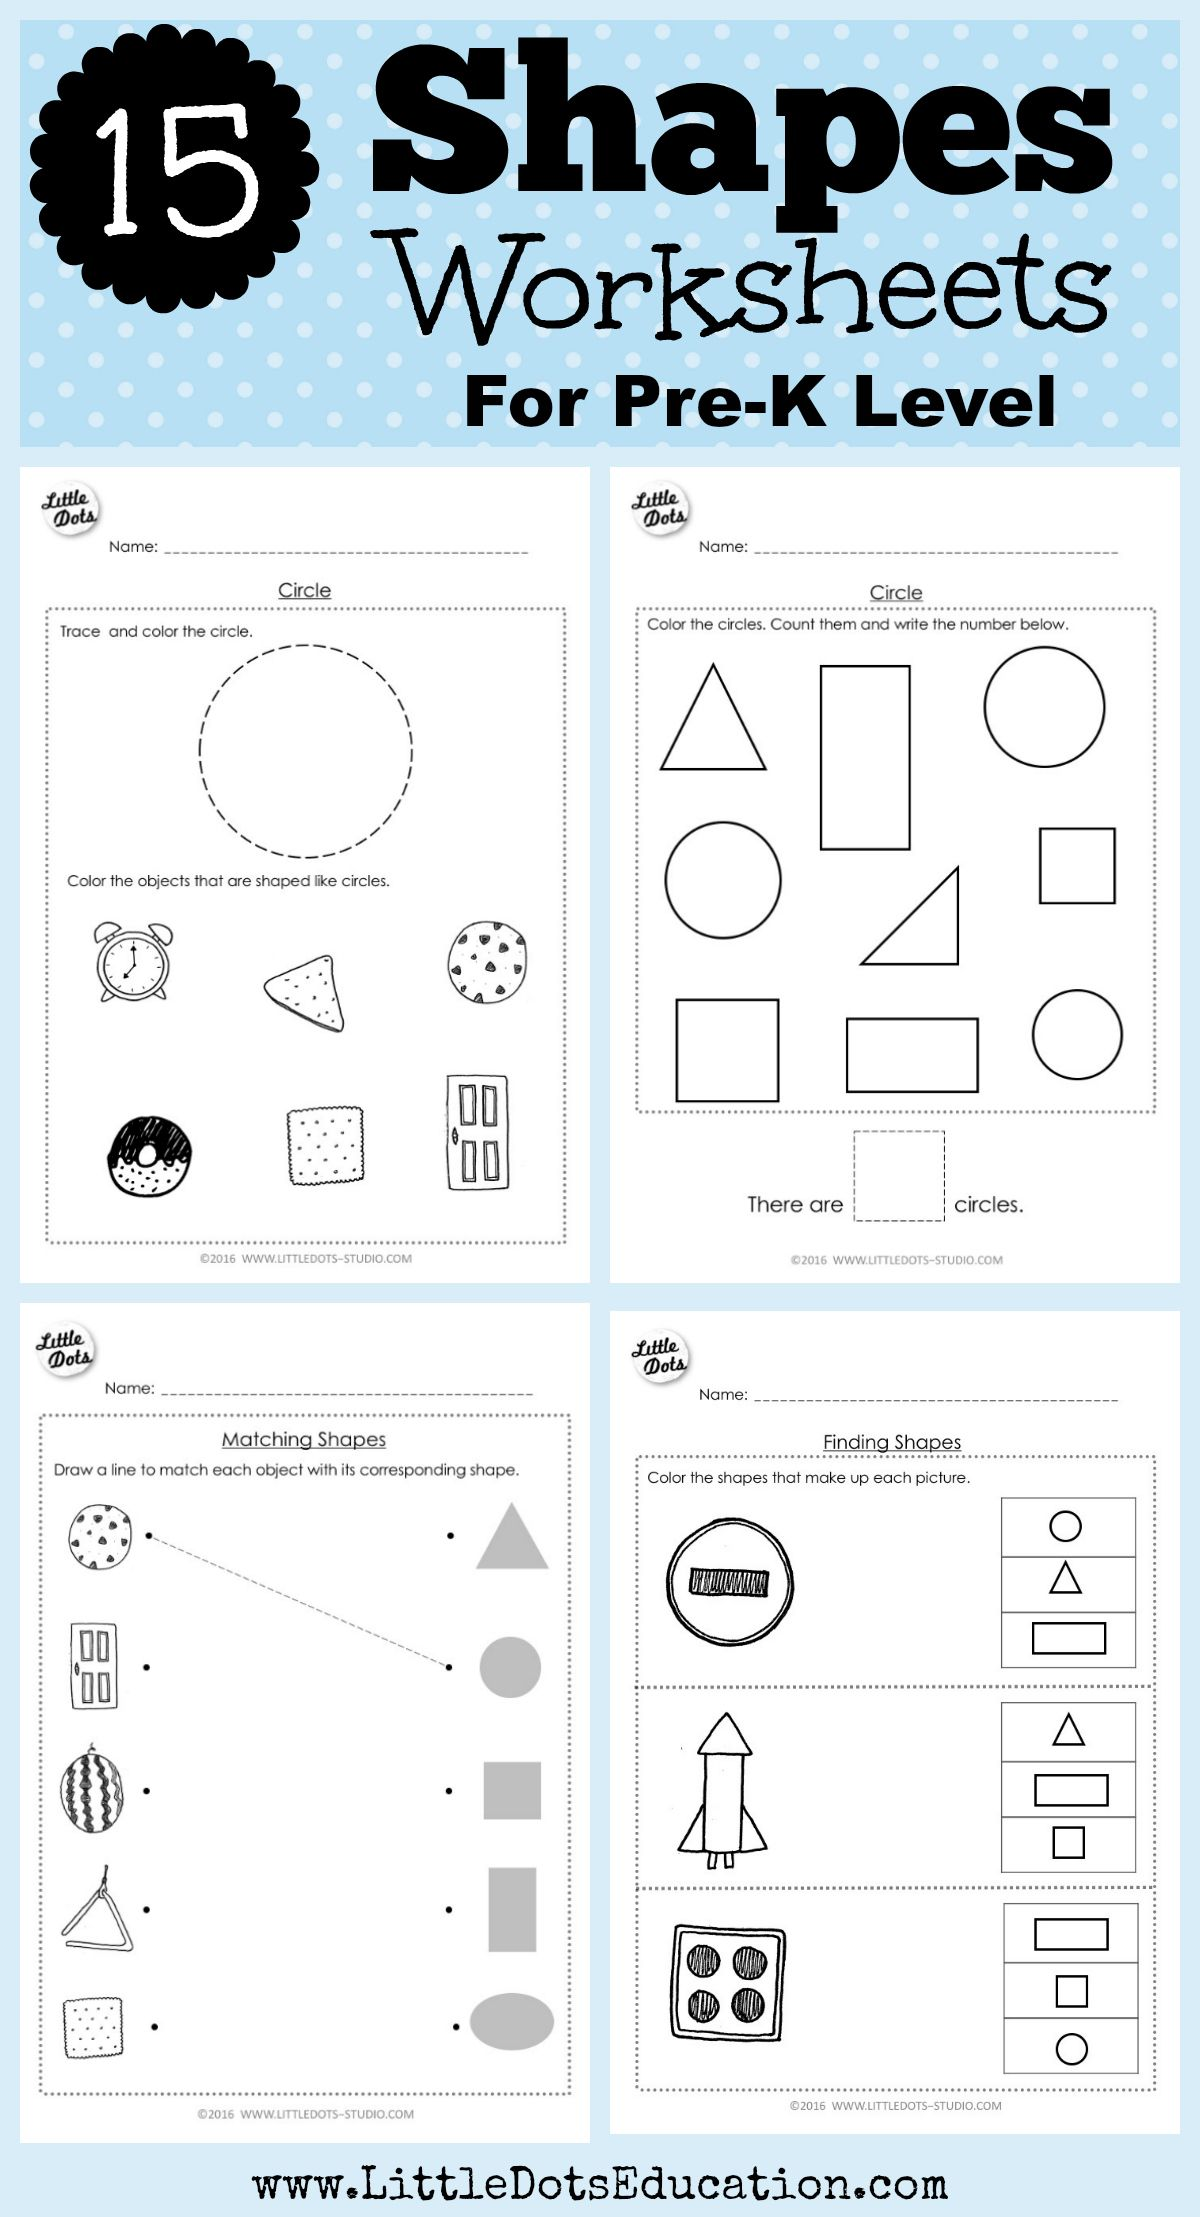 Download Shapes Worksheets For Pre K Or Preschool Class On Circle